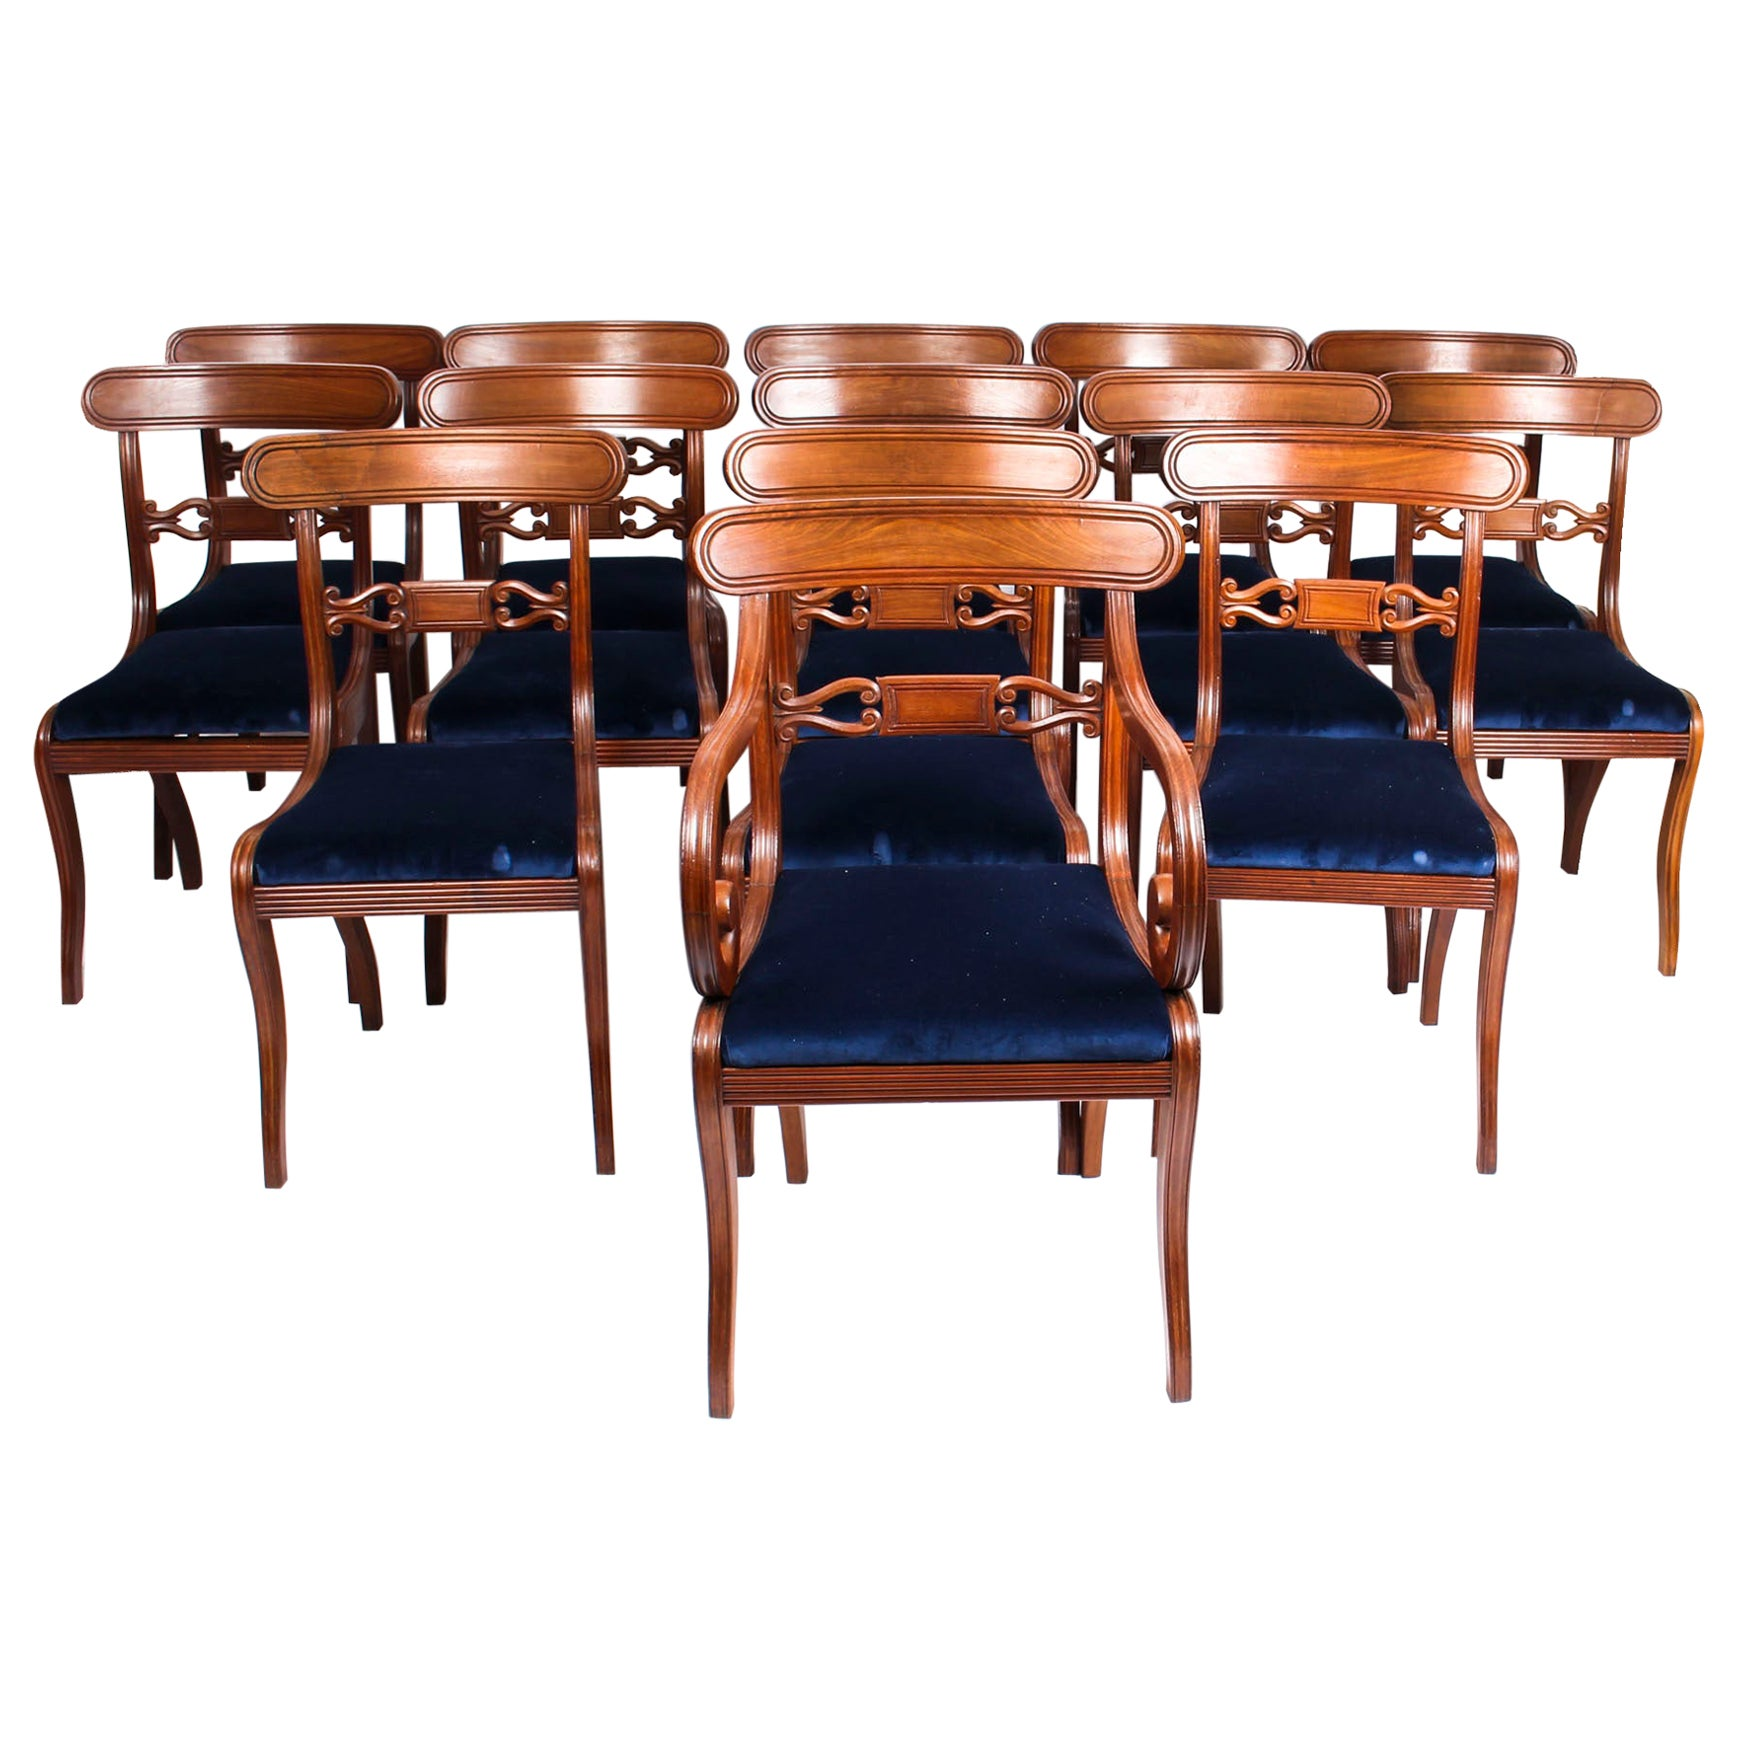 Antique Set of 14 Regency Mahogany Dining Chairs, 19th Century